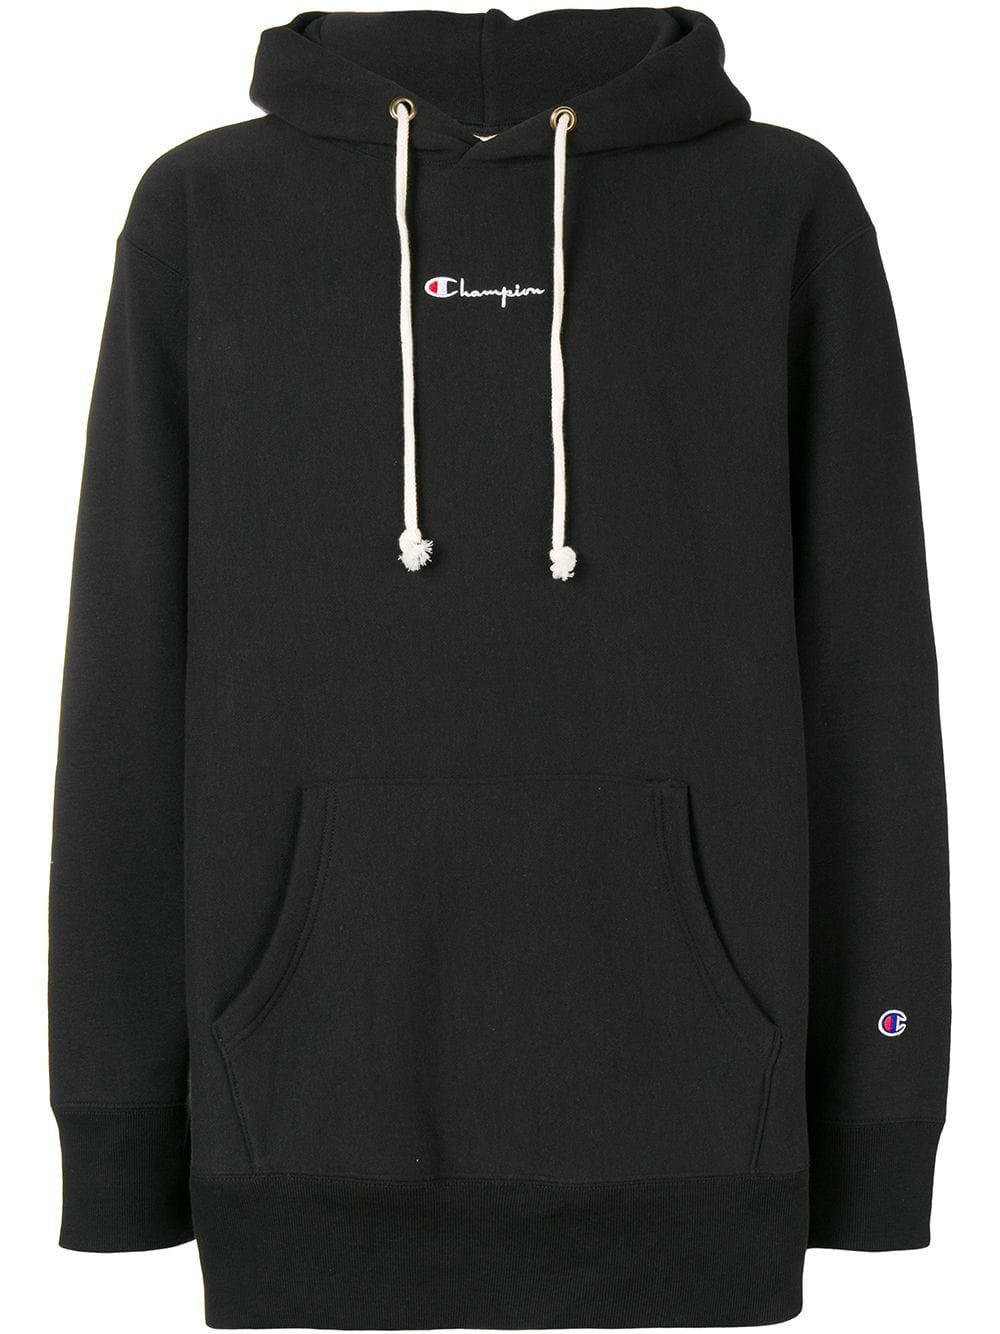 9aac6431 CHAMPION CHAMPION CONTRAST LOGO HOODIE - BLACK. #champion #cloth ...